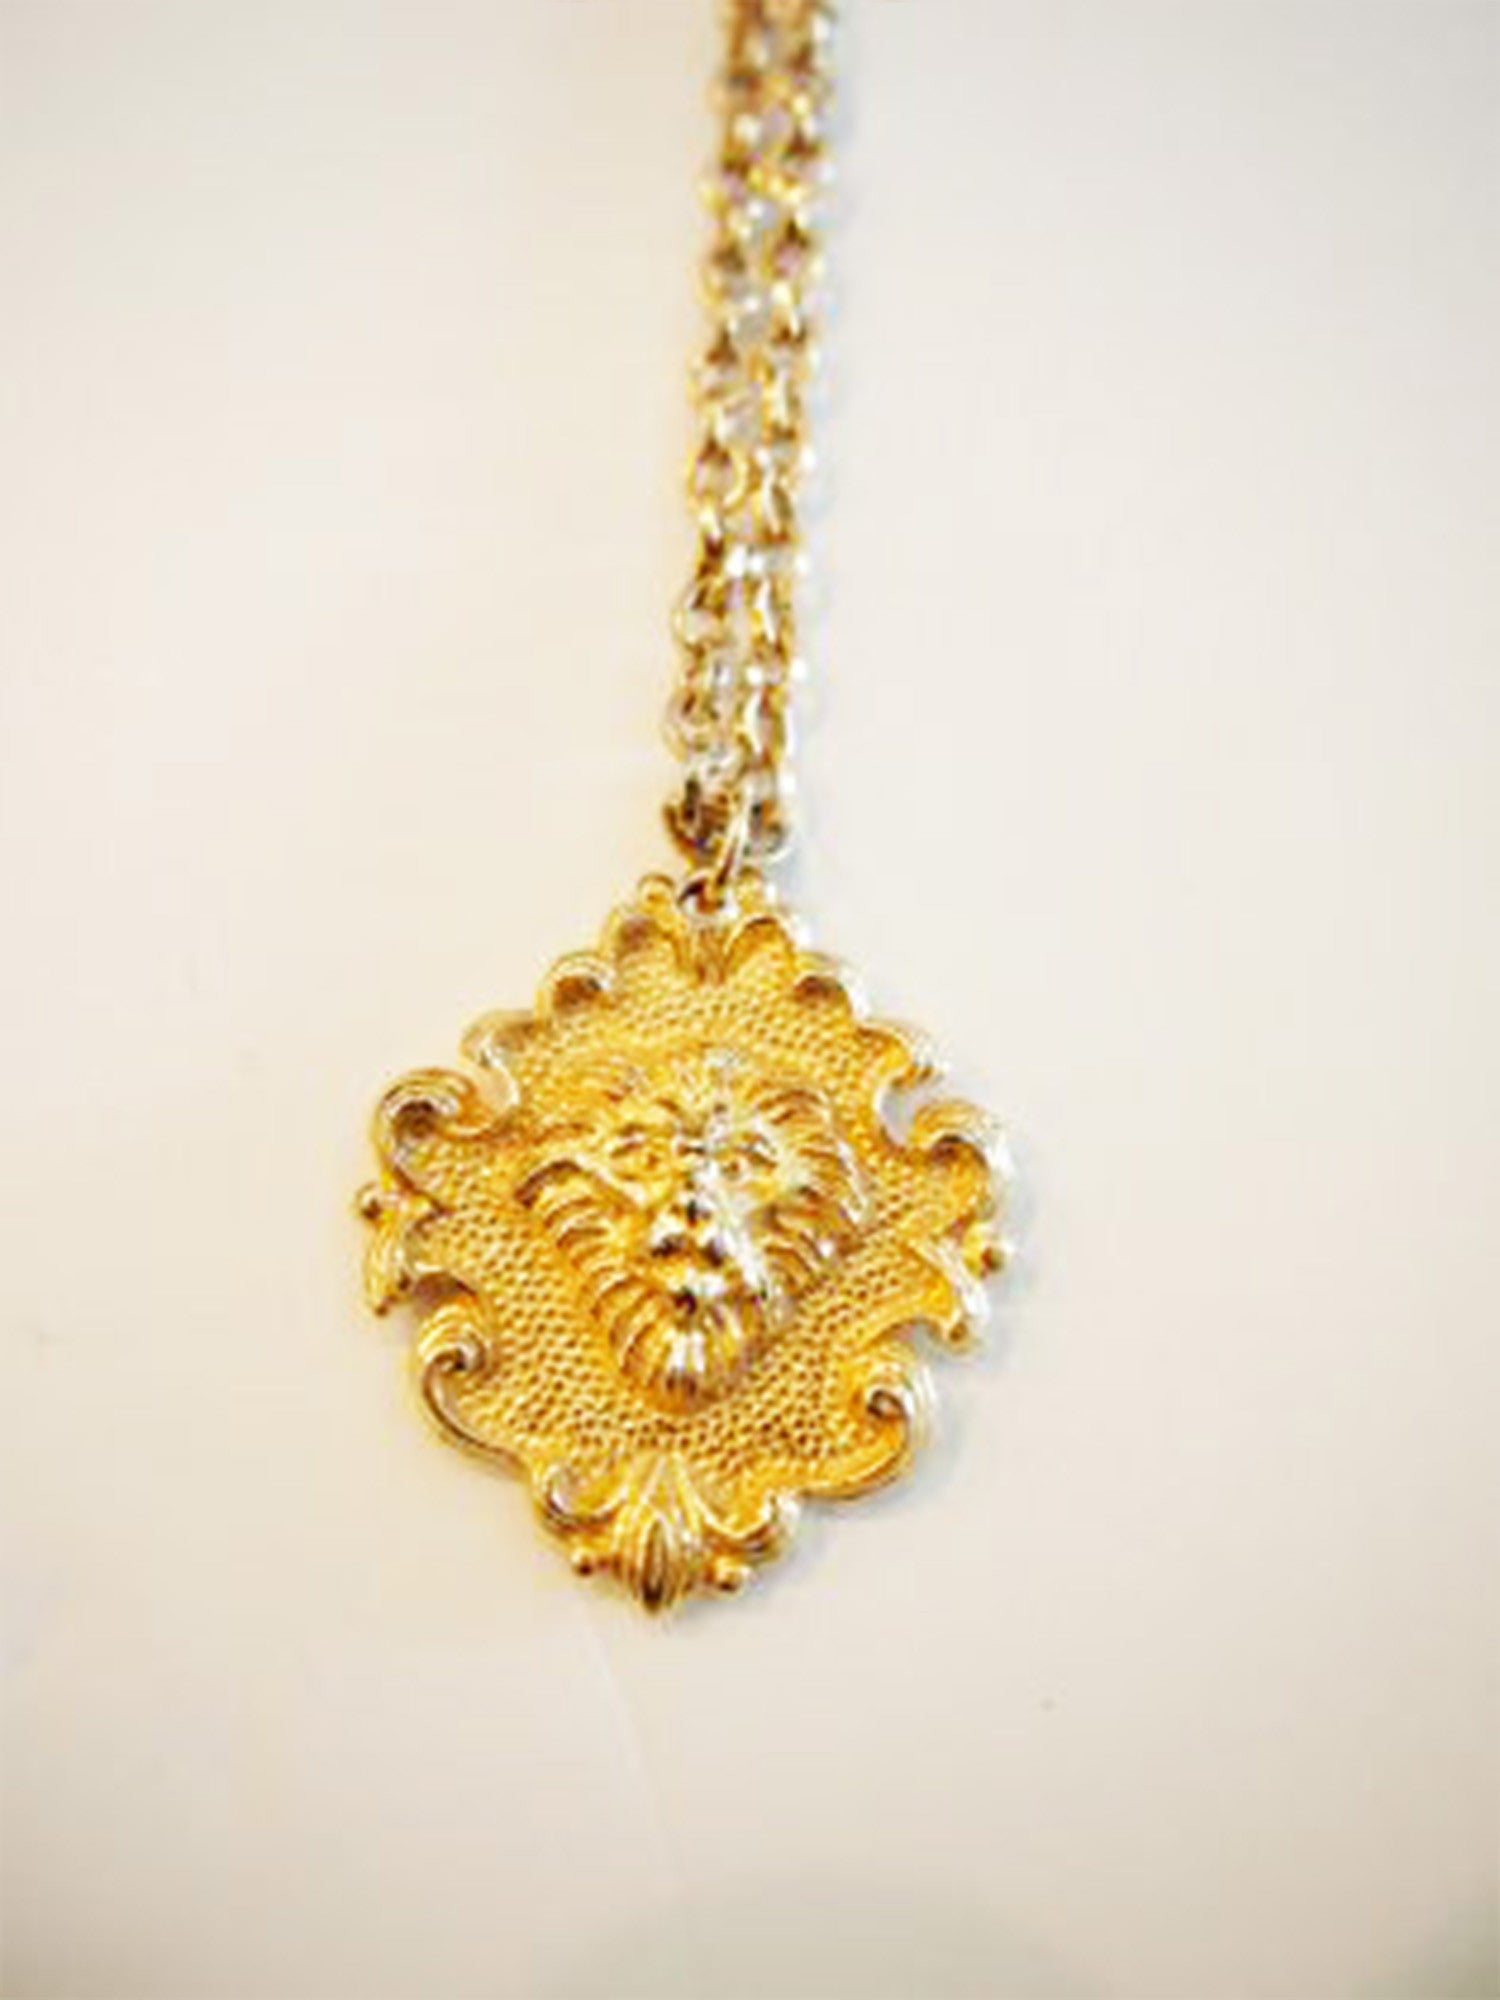 The Lion's Mane Event Vintage Necklace